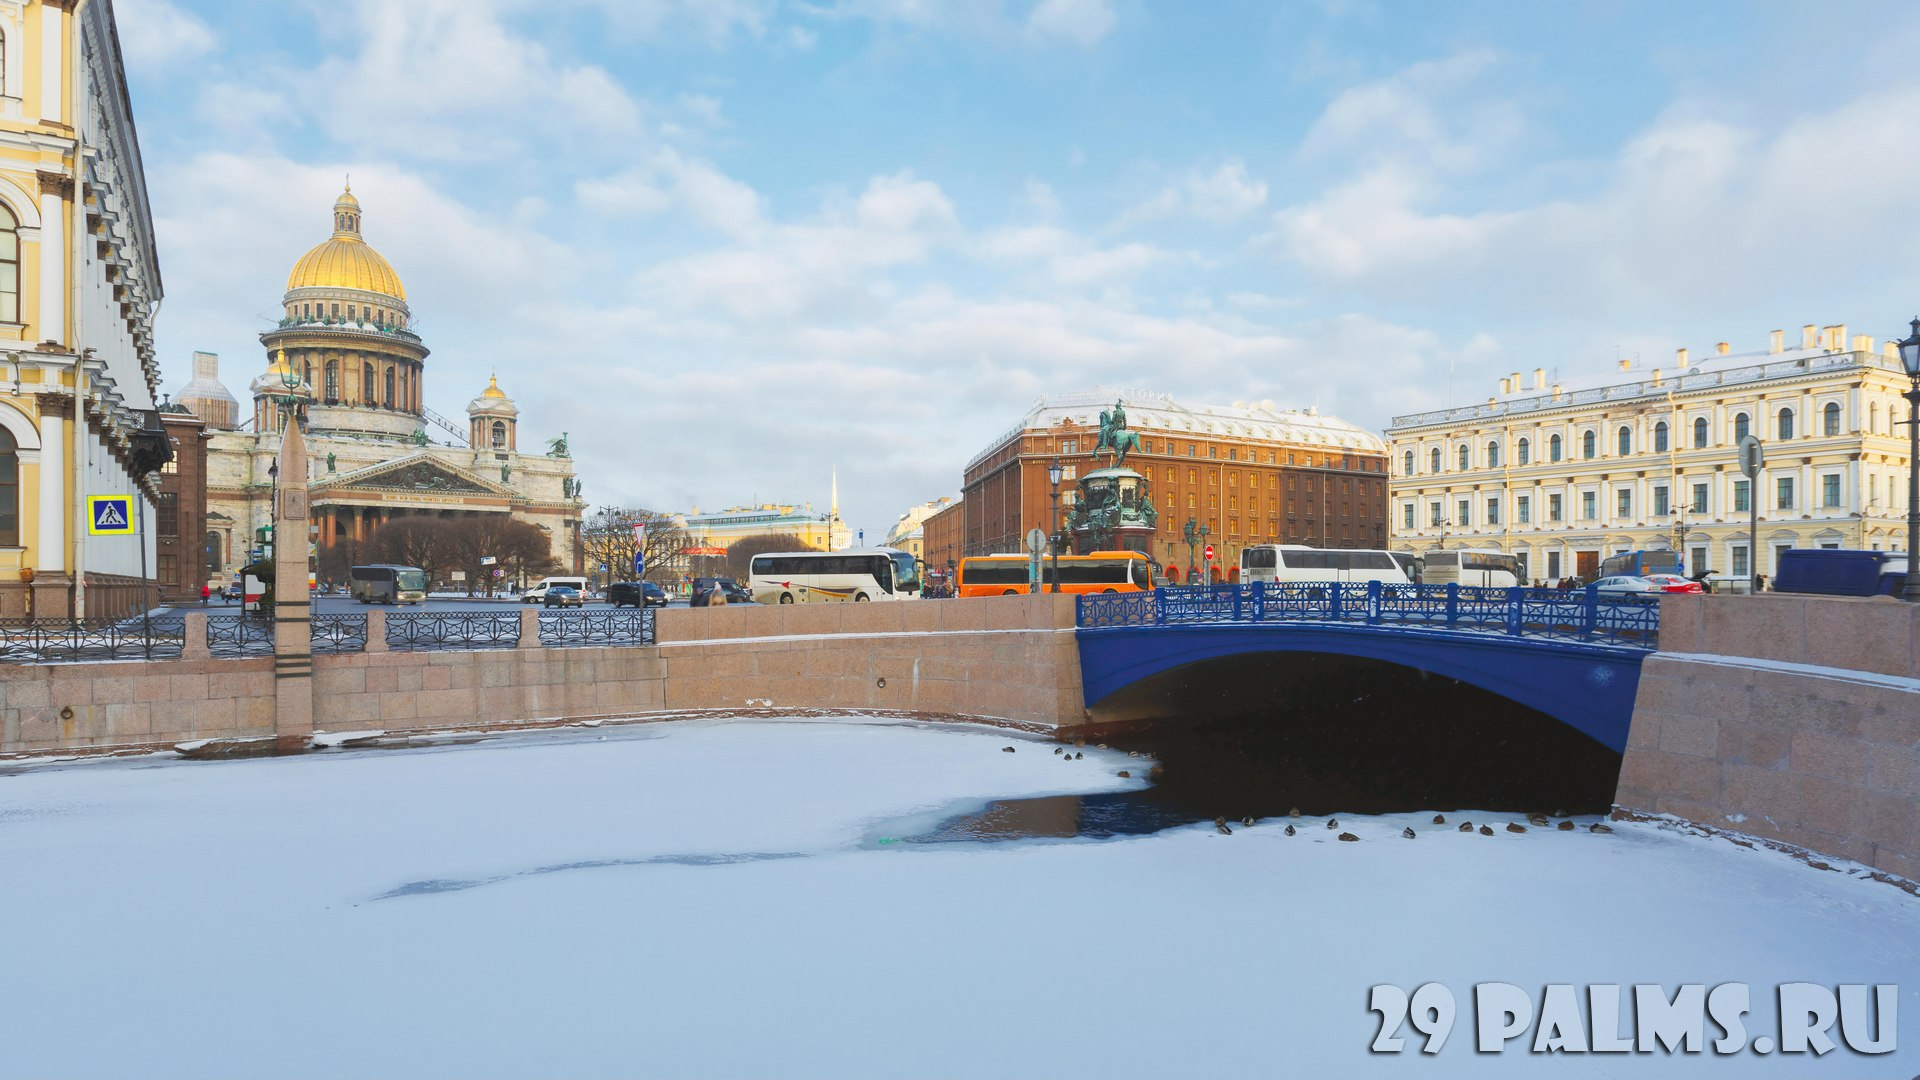 Россия. Санкт-Петербург. Синий мост через Мойку. Early morning at winter Saint Petersburg. View from Moika embankment to St Isaac's Square, Blue bridge and hotels